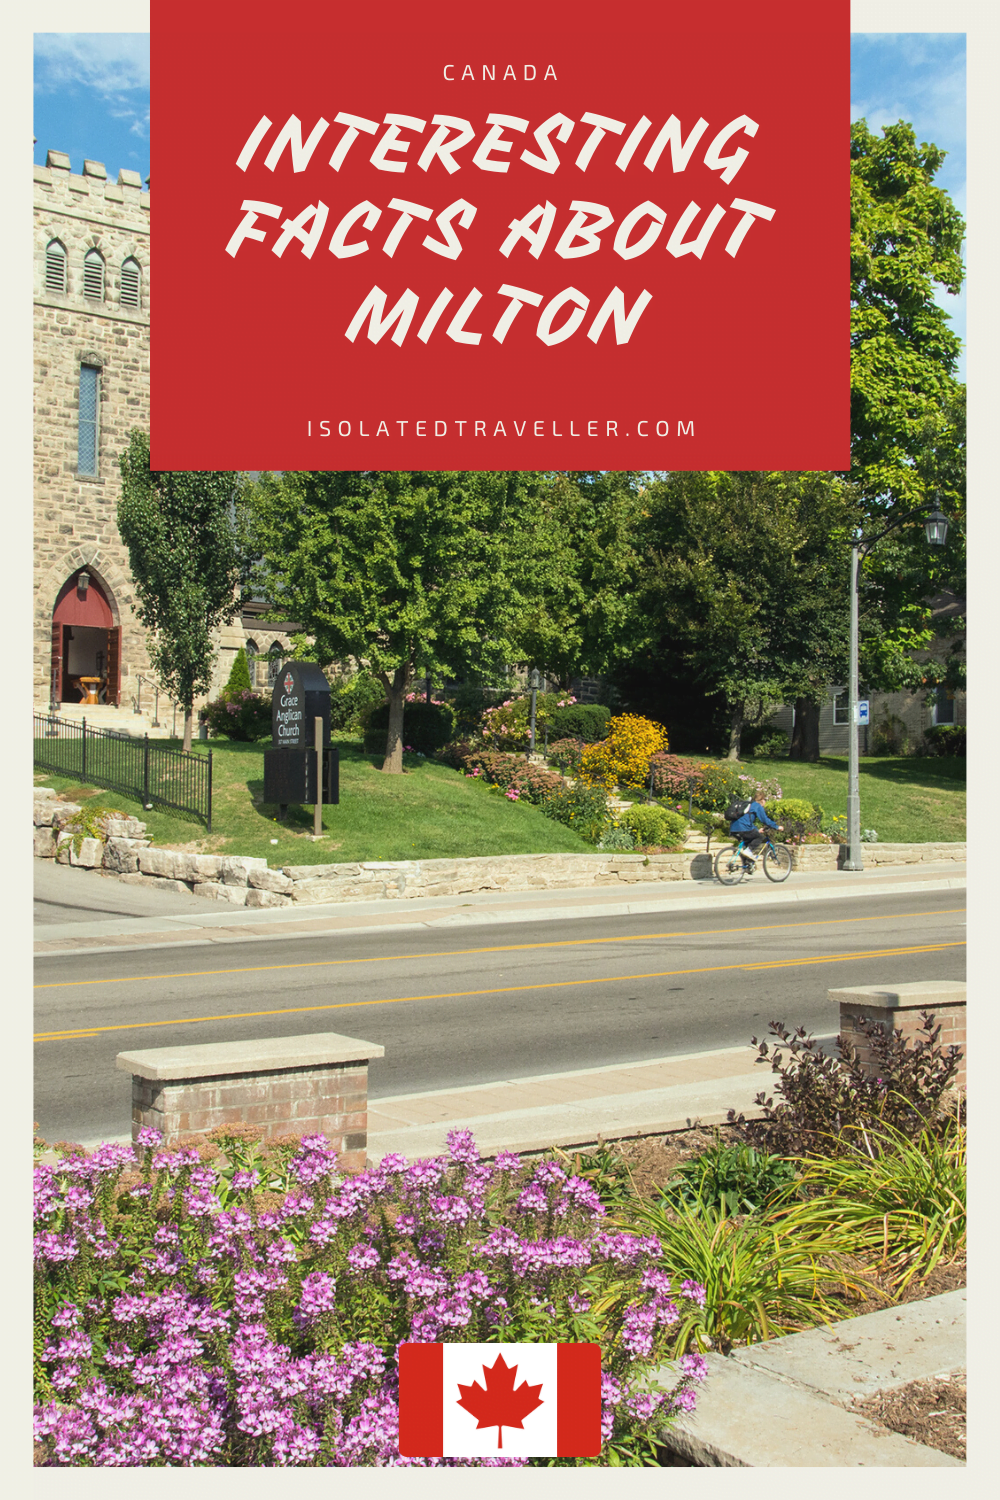 Facts About Milton